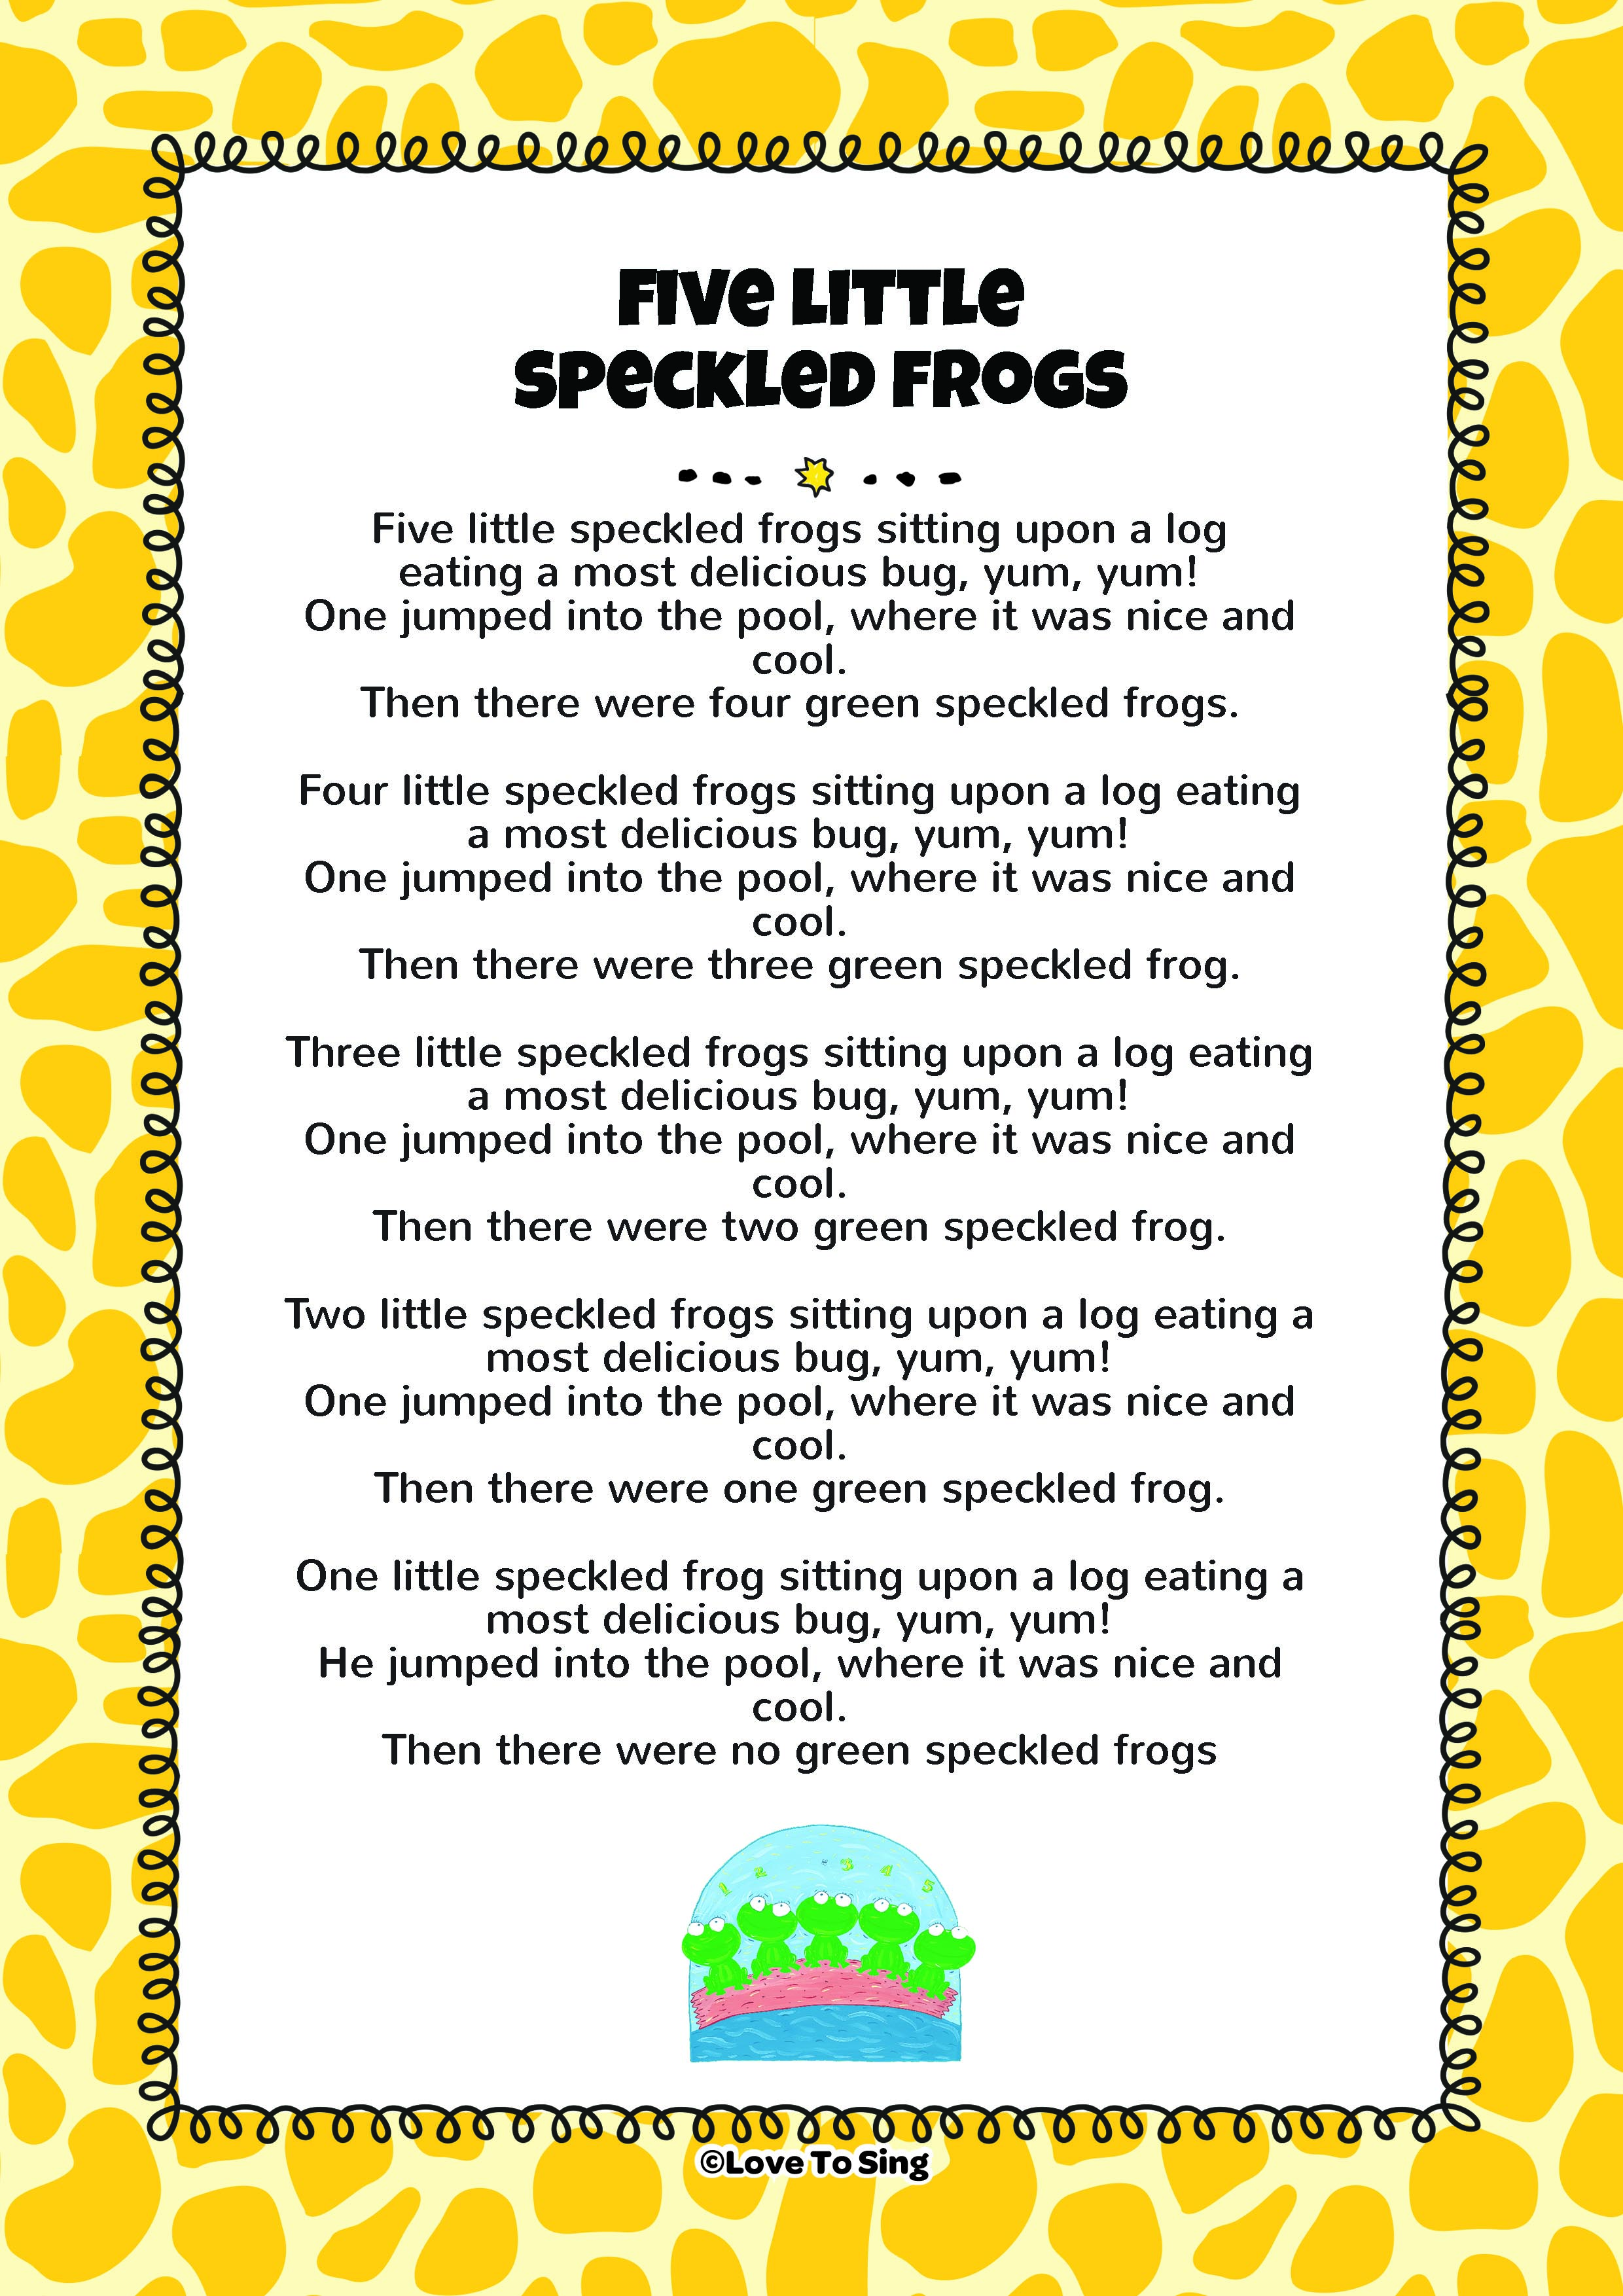 5 little frogs song